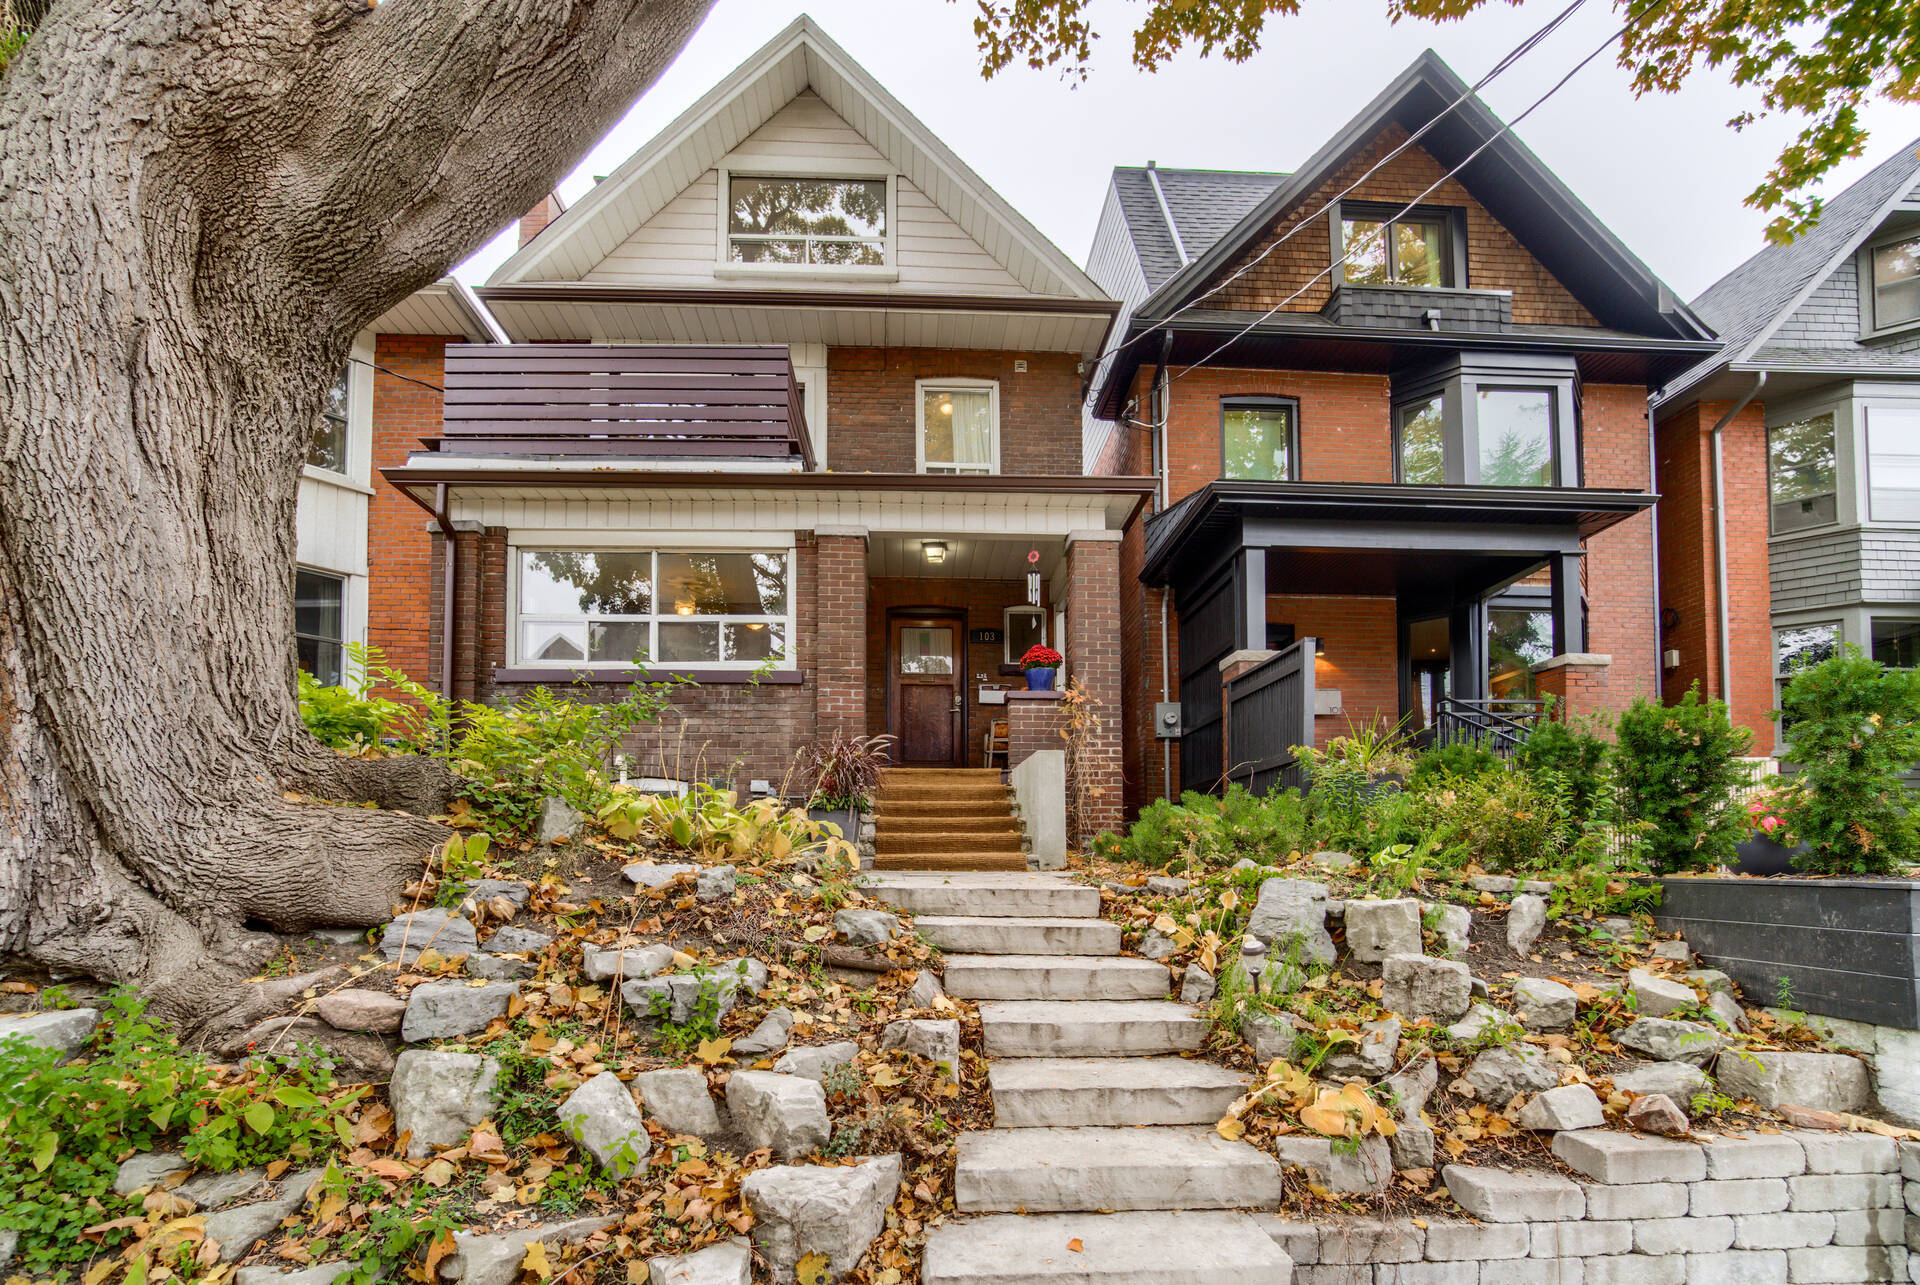 103 Glendale Avenue For Sale in High Park Swansea